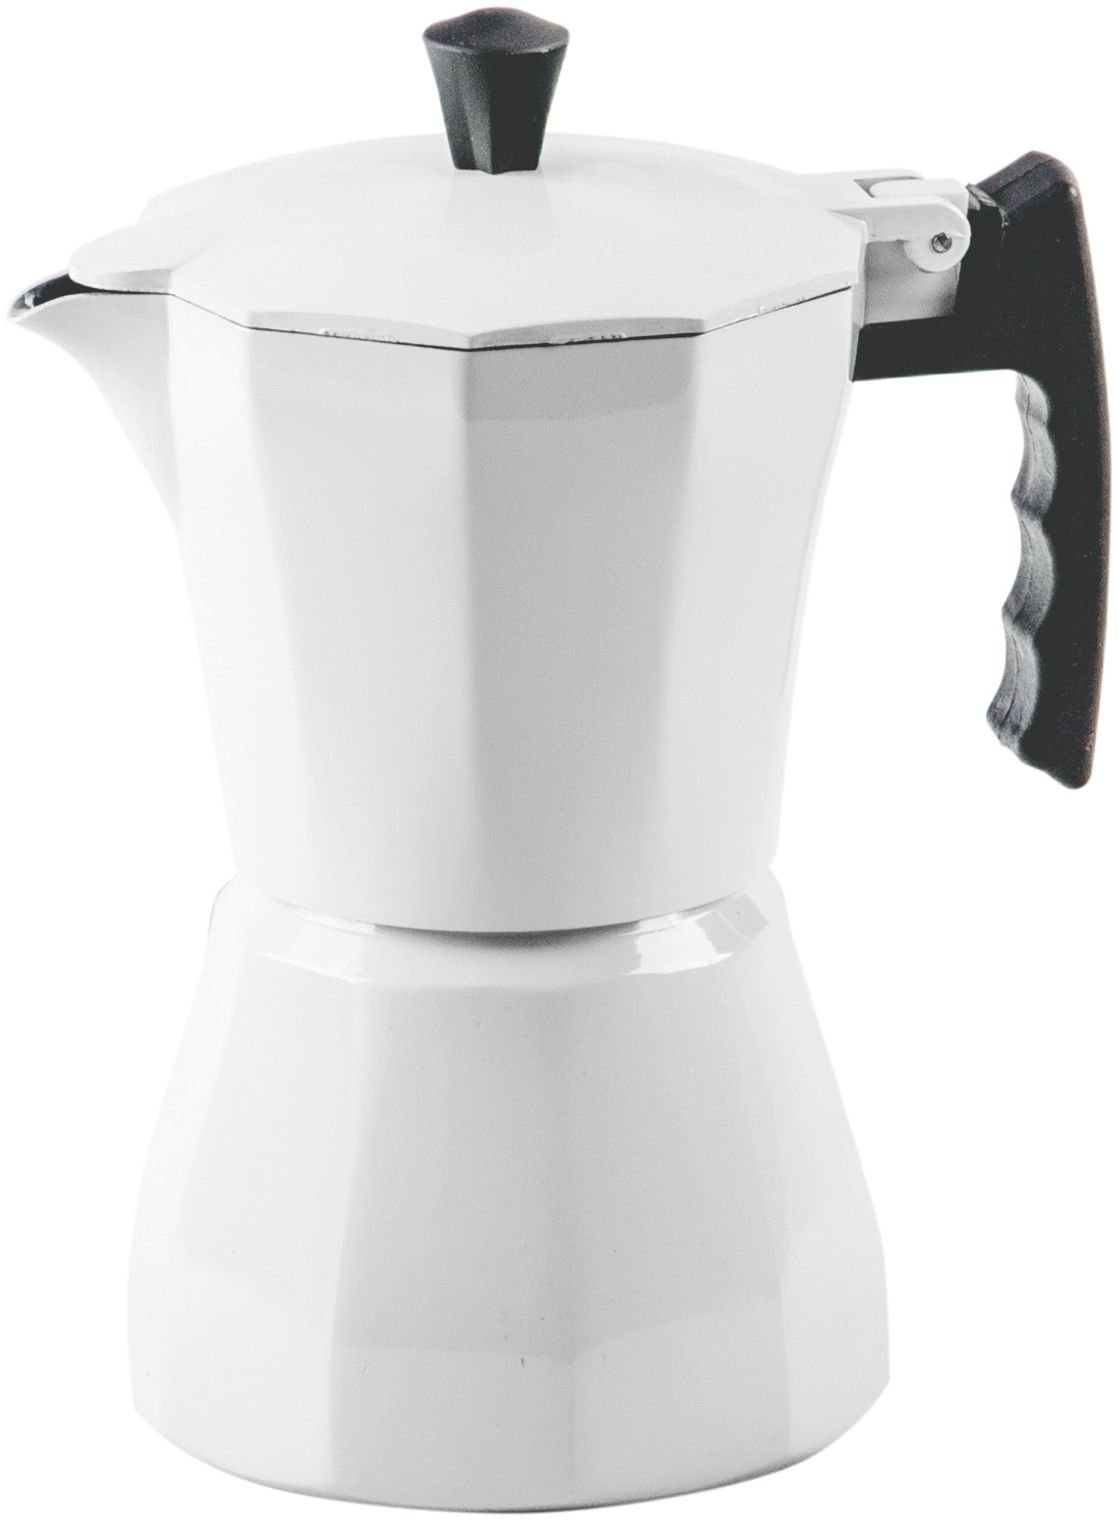 Palais Dinnerware Stovetop Espresso Maker - Aluminum Coffee Maker Moka Pot (White, 3 Demitasse Cups)